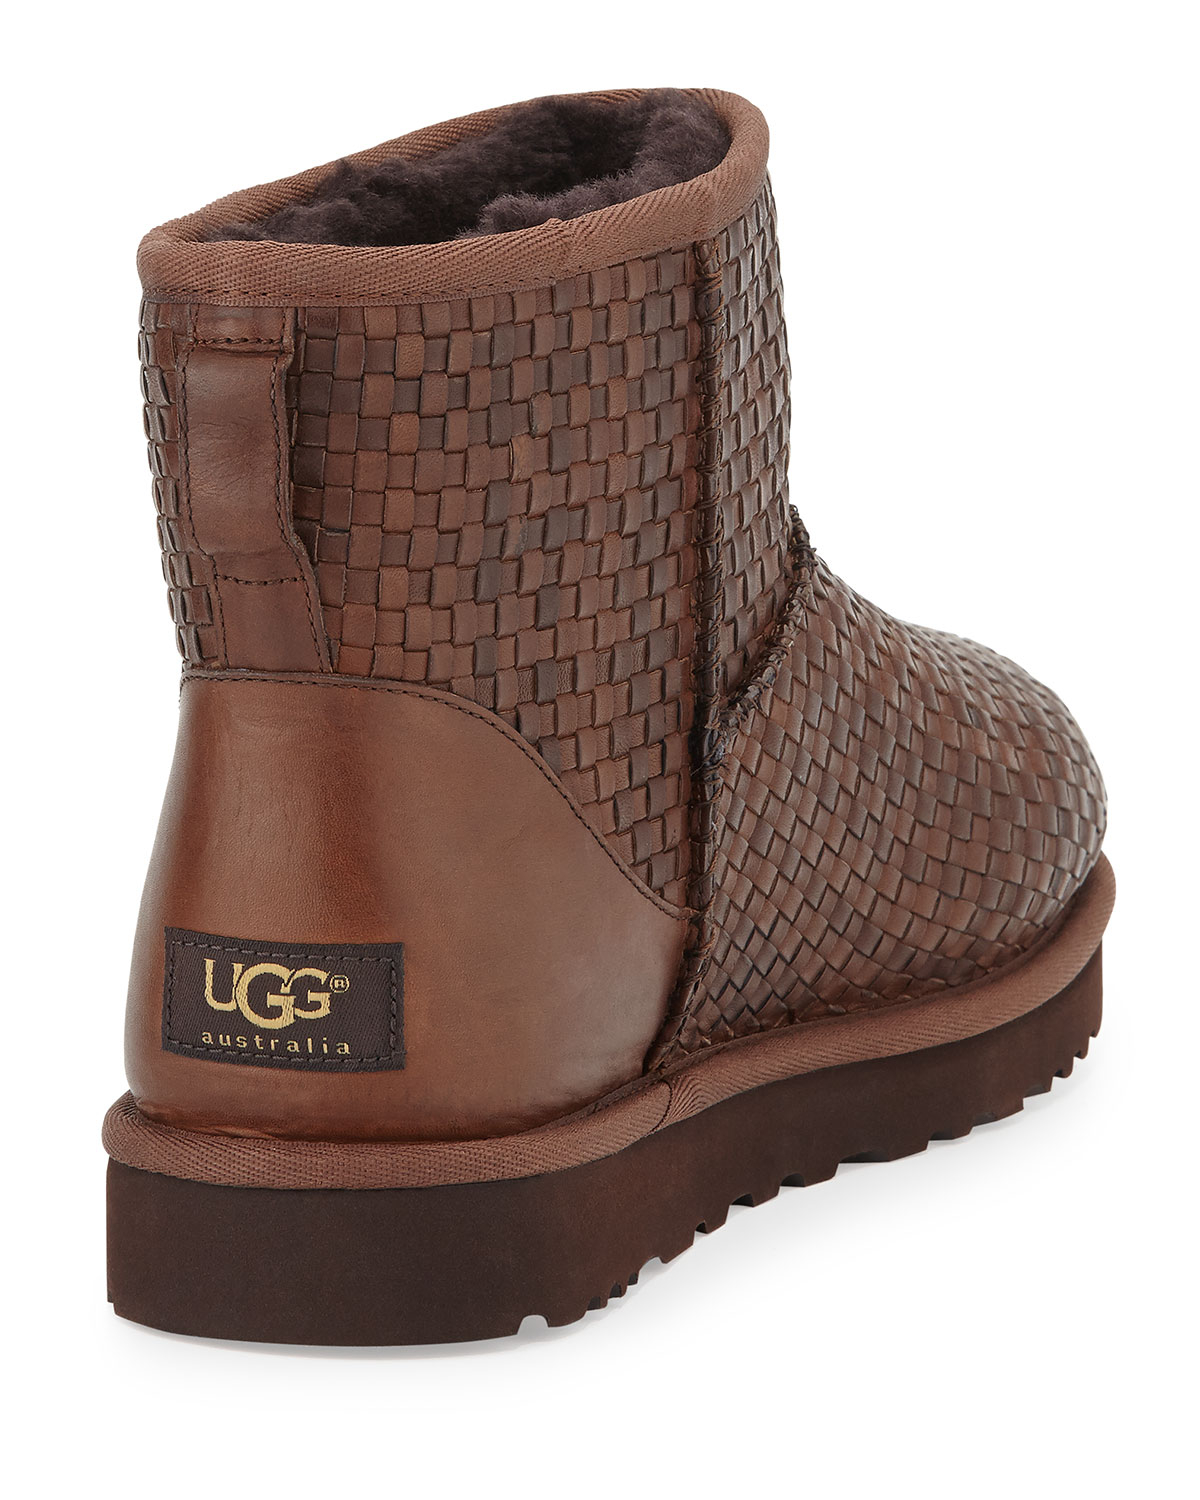 UGG Woven Leather Mini Boot in Brown - Lyst